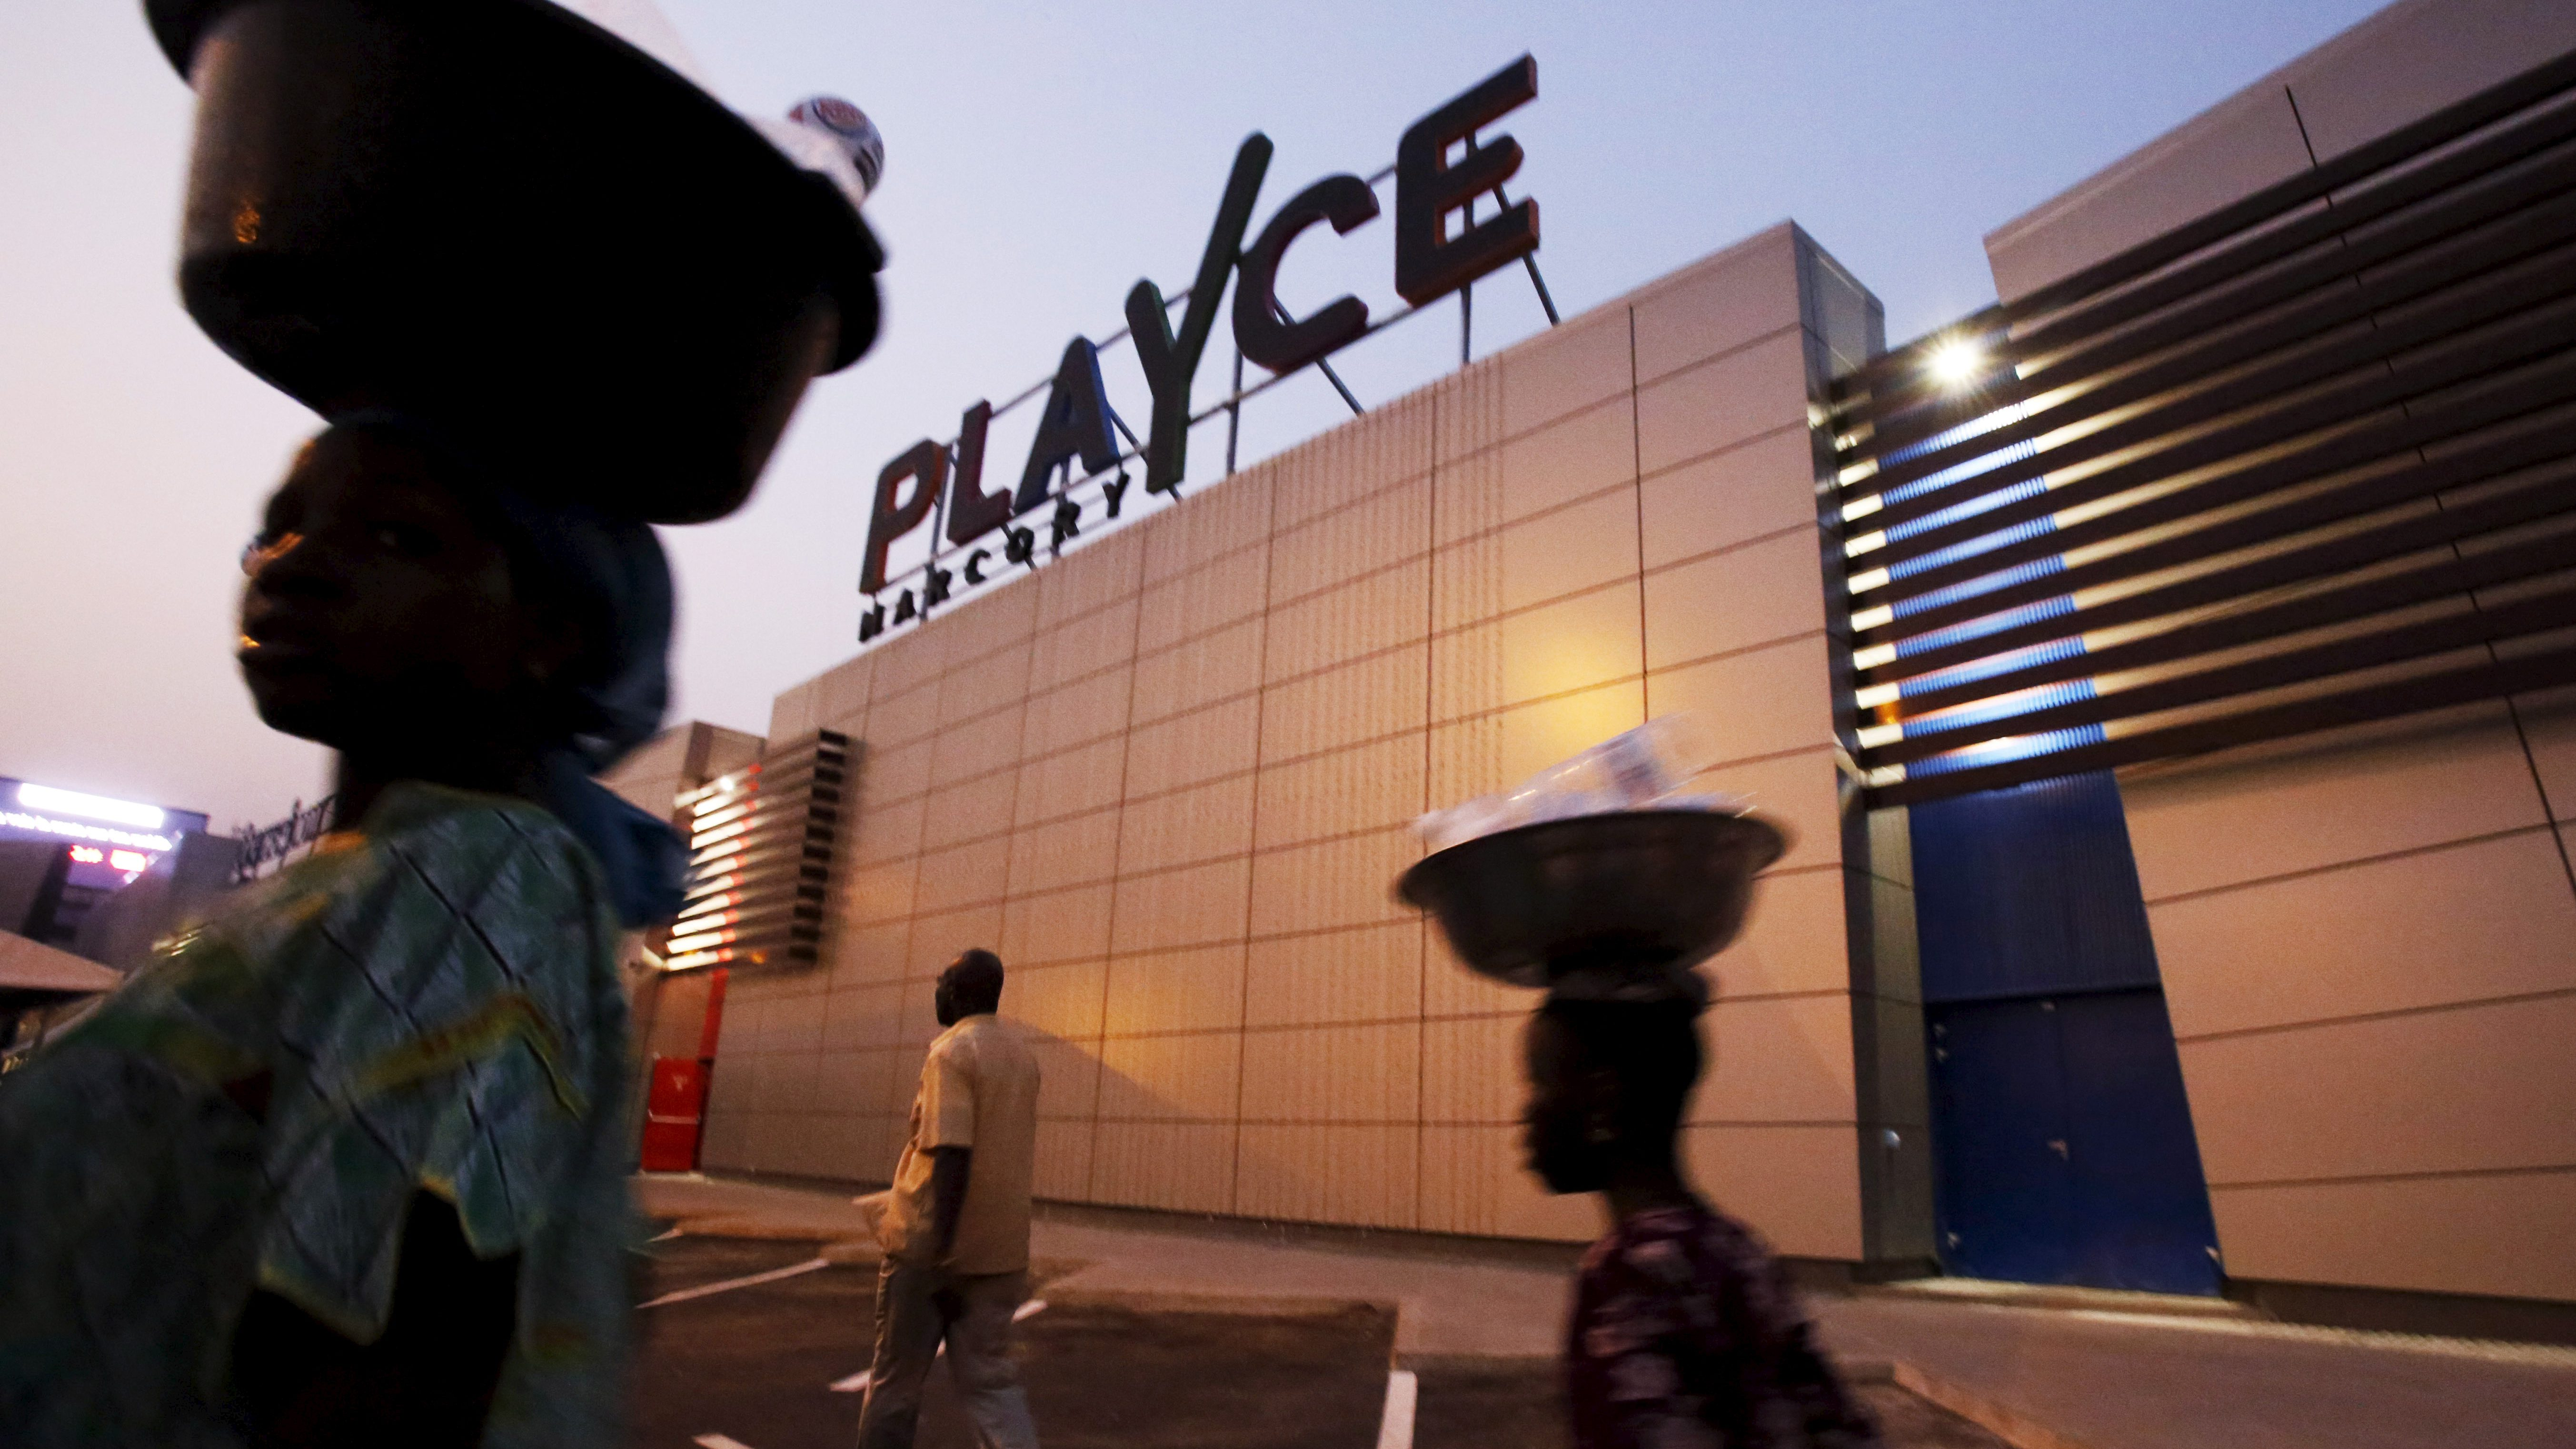 PLAYCE mall housing the French supermarket Carrefour is seen after its inauguration by Ivory Coast's President Alassane Ouattara in Abidjan, Ivory Coast, December 18, 2015. French distribution group CFAO opened its first shopping mall in Africa on Friday, the $66 million centre in Ivory Coast's commercial capital Abidjan, as part of a major drive to tap into the growth of Africa's middle classes.  REUTERS/Thierry Gouegnon - RTX1ZBW8